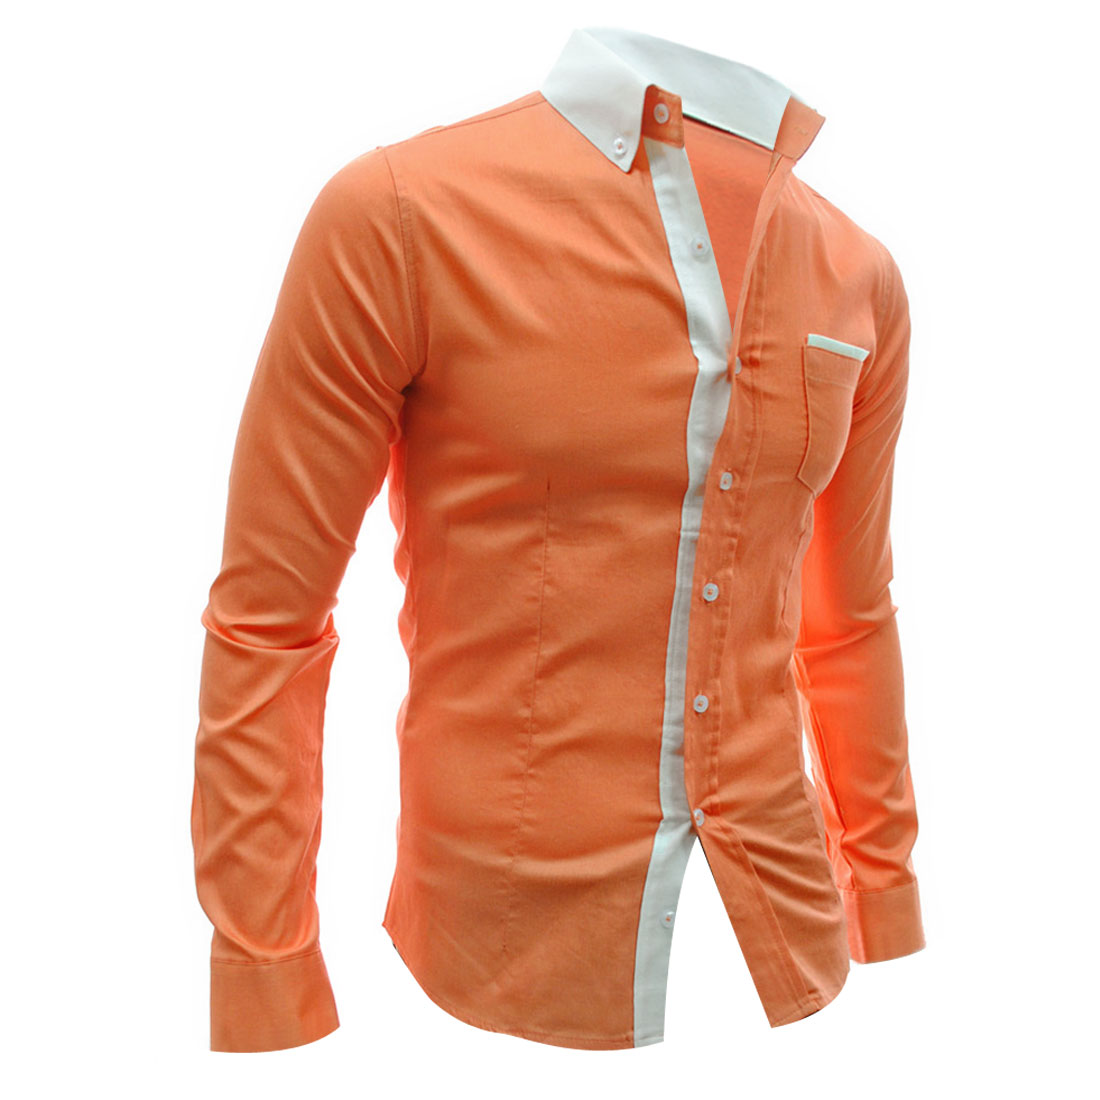 Man Chic Orange Color Point Collar Long Sleeved Button Down Shirt M